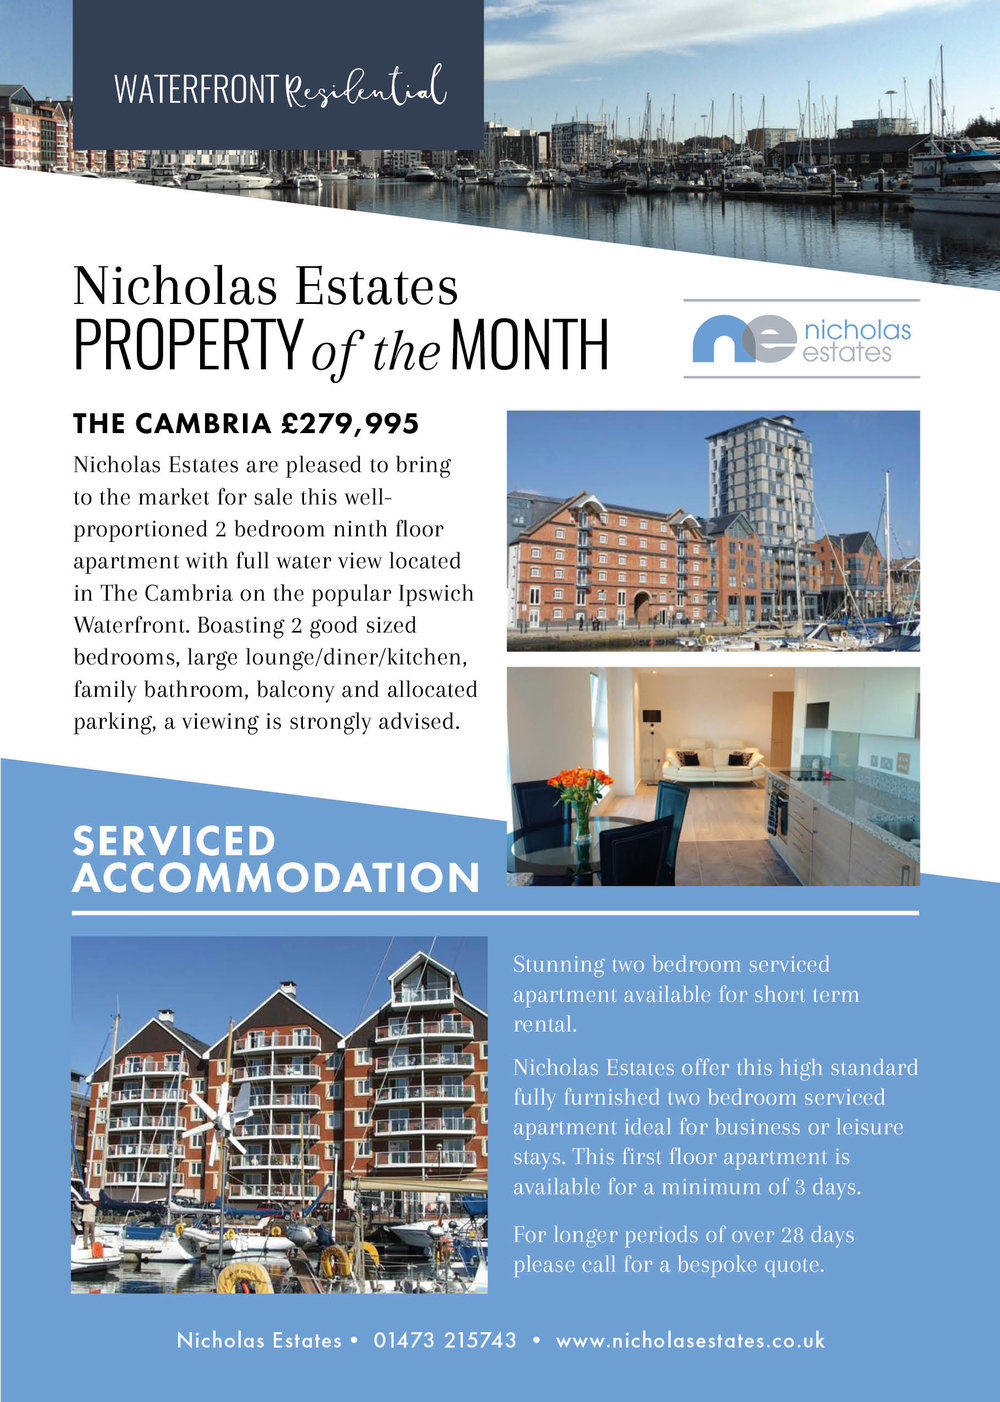 nicholas estates, property of the month